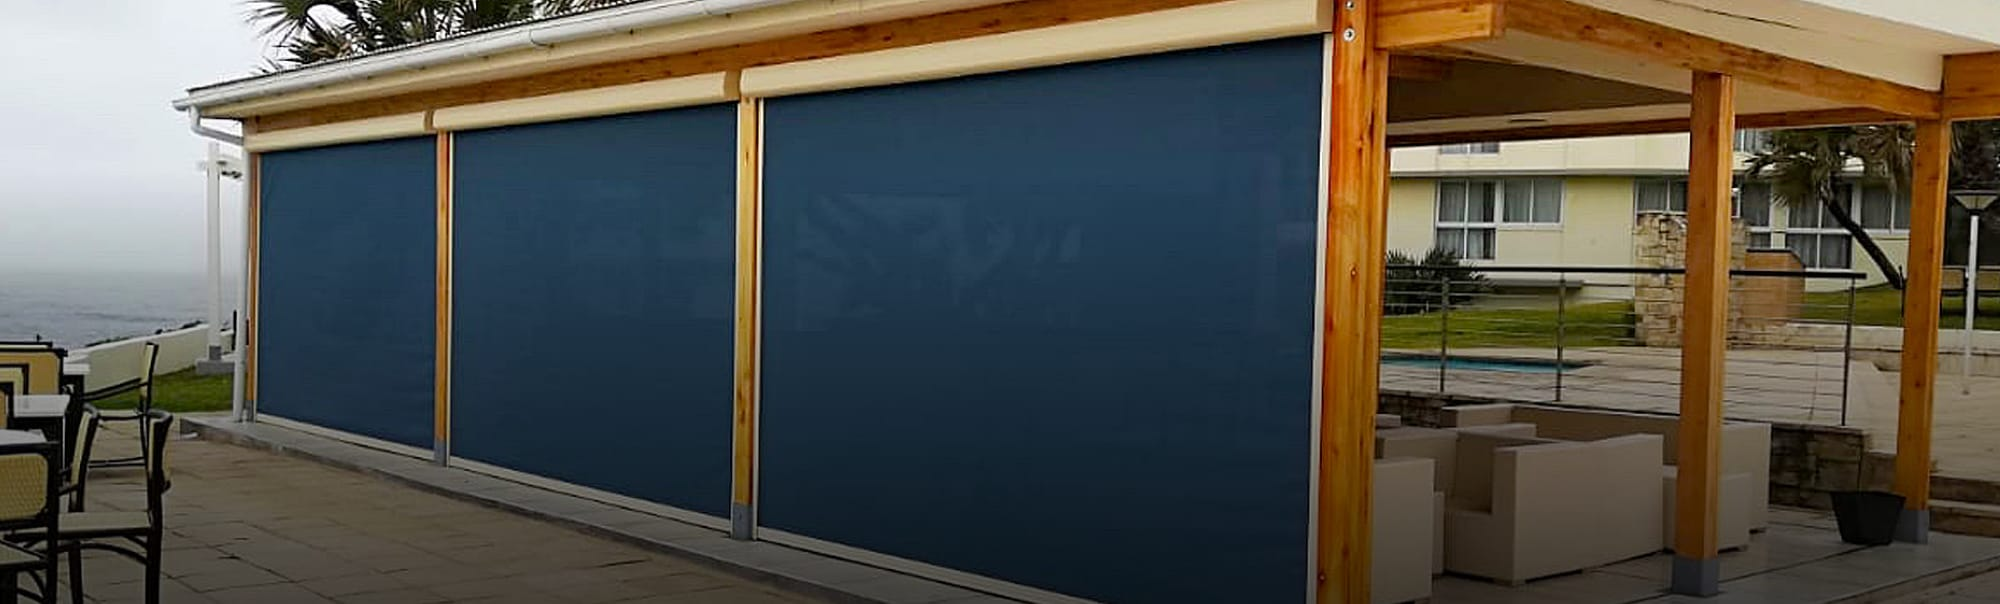 Slidetrack blinds premium quality outdoor blind collection